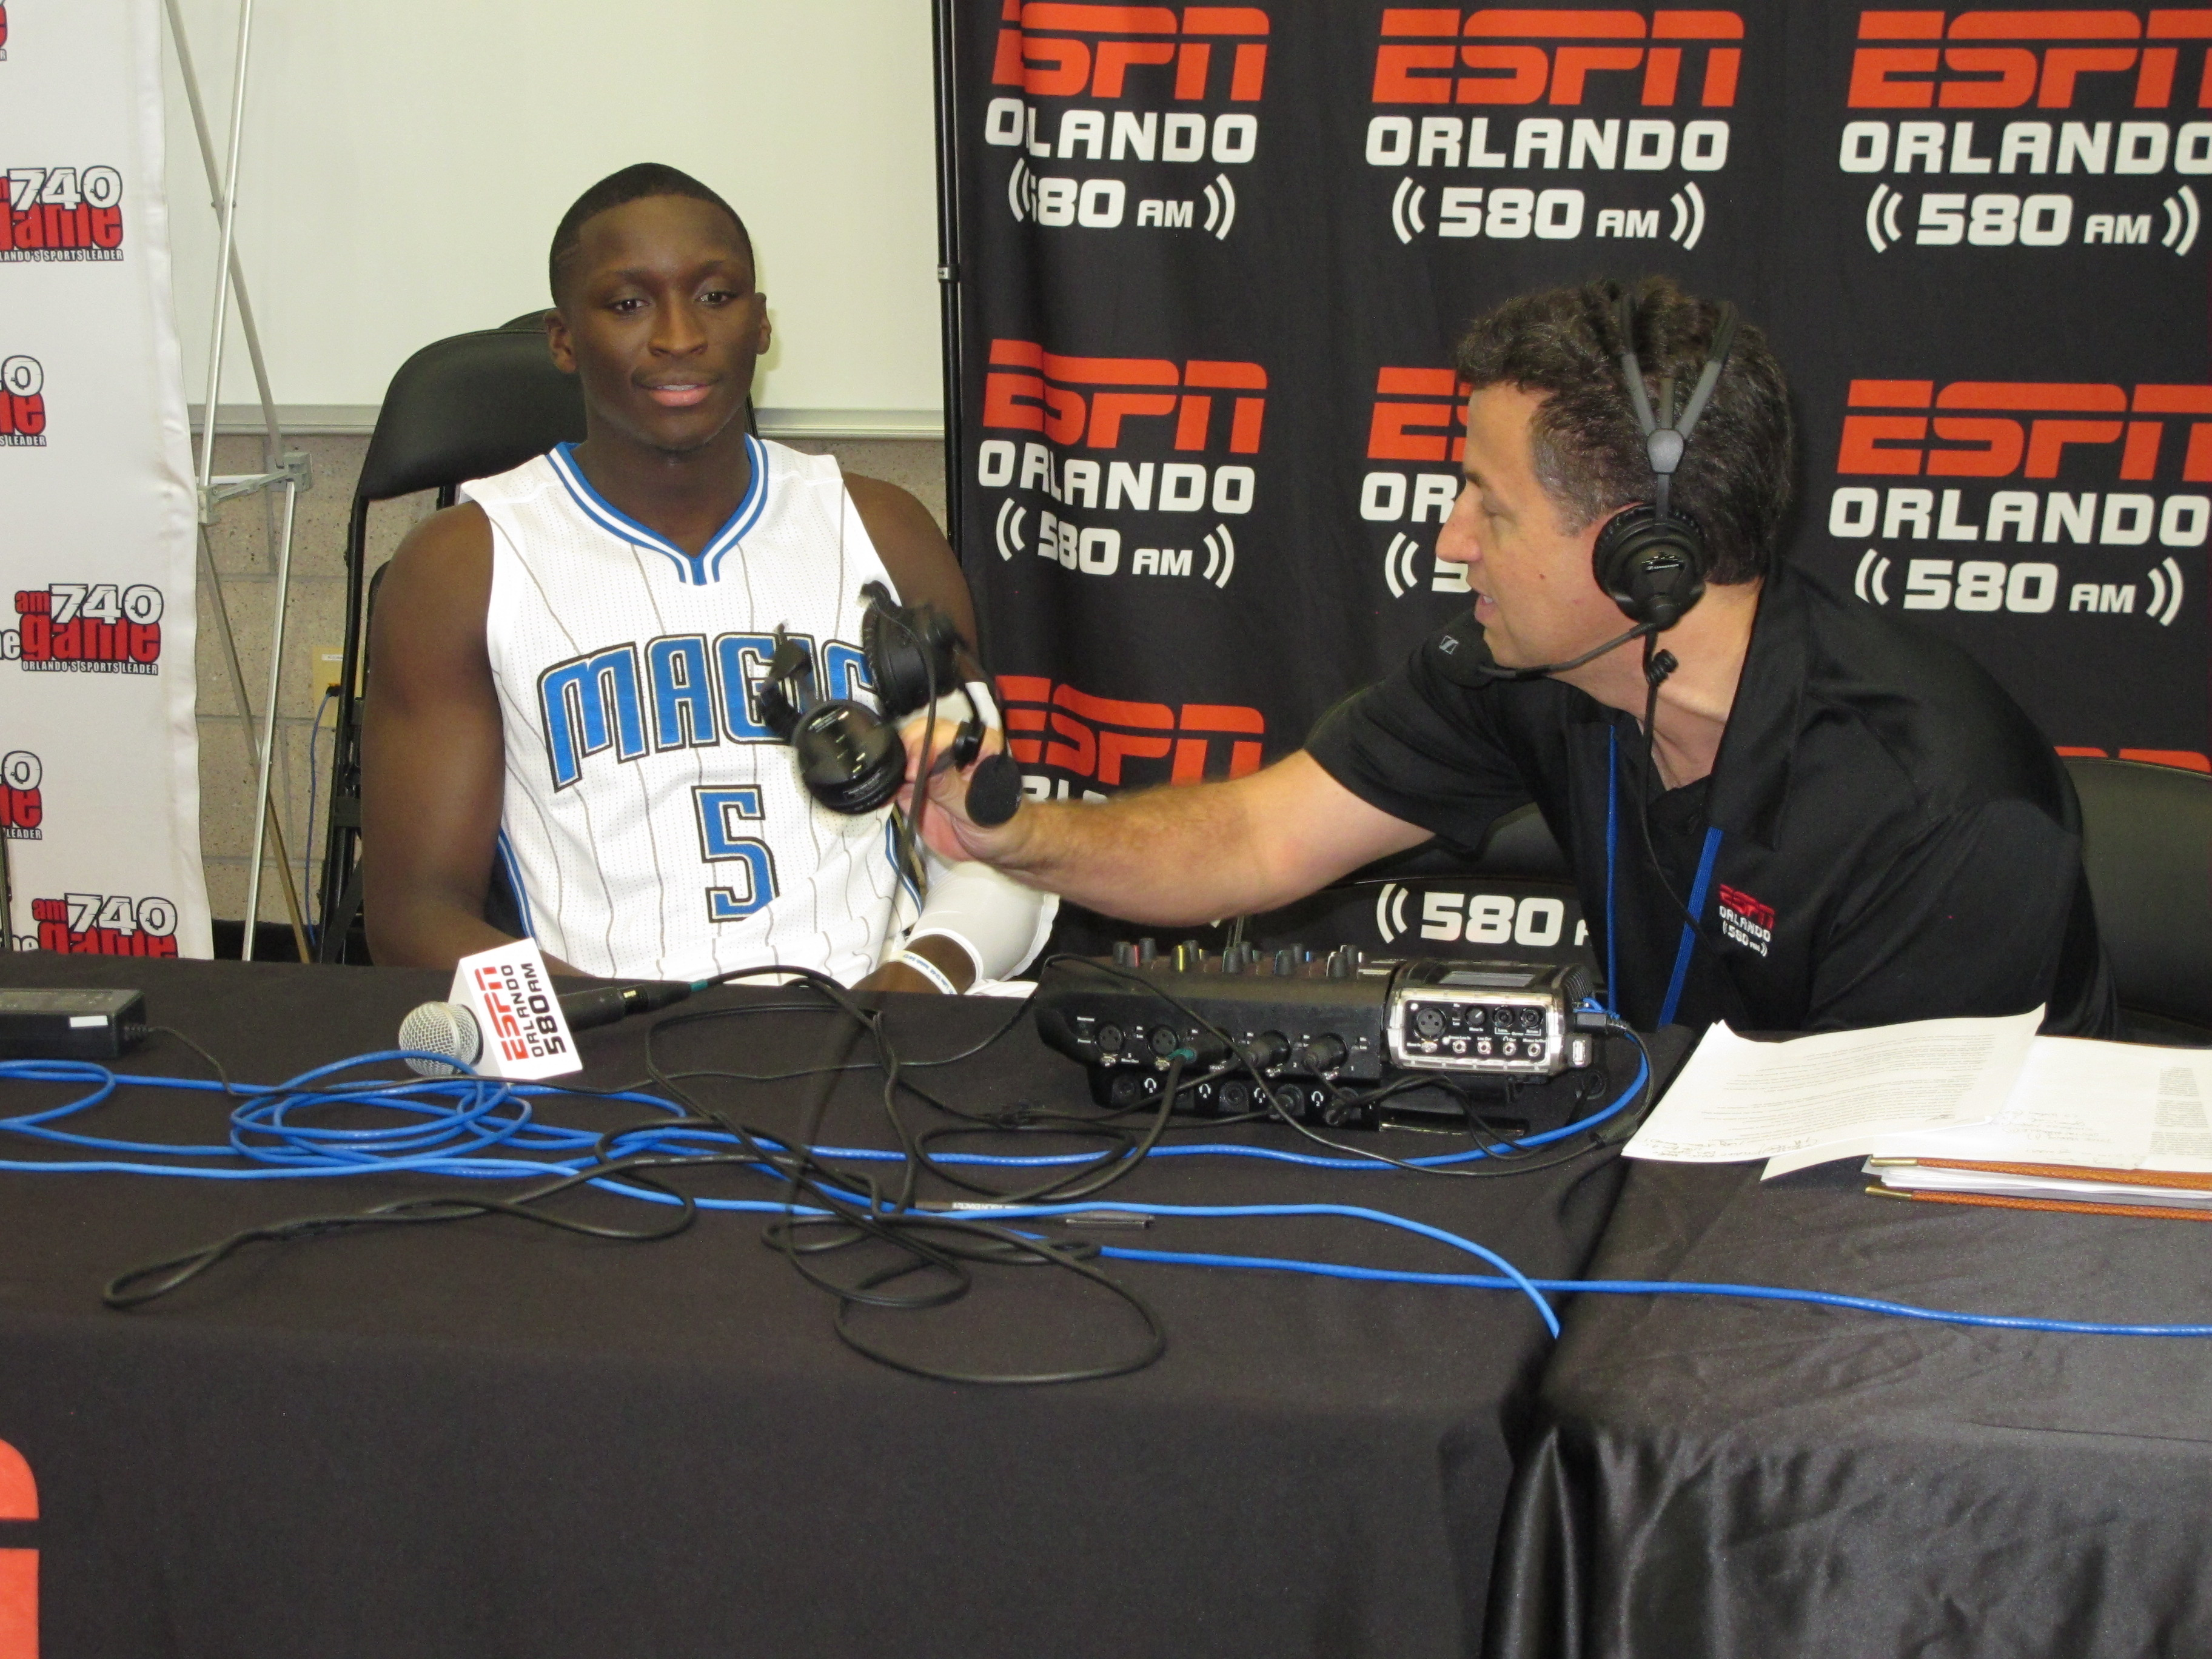 Victor Oladip being interviewed by ESPN